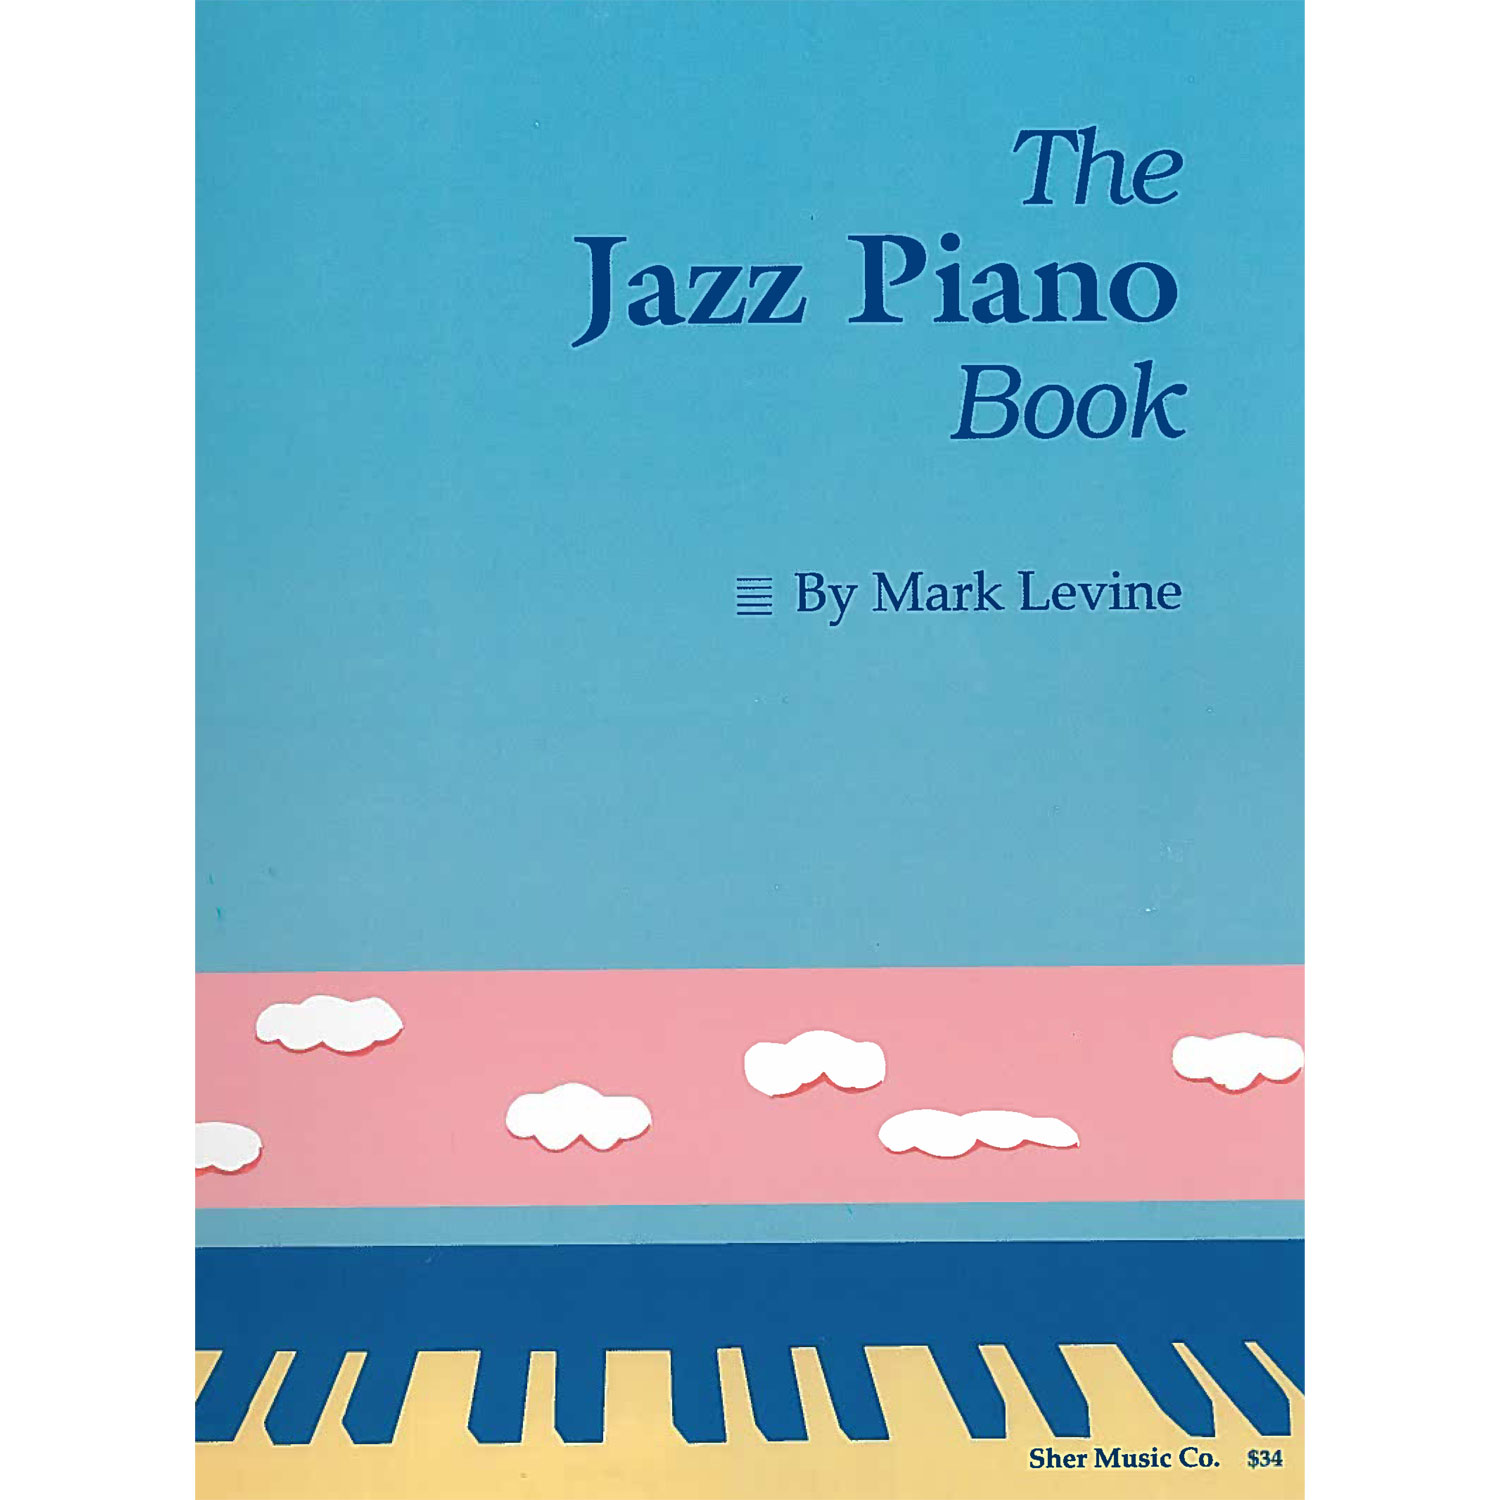 The Jazz Piano Book by Mark Levine